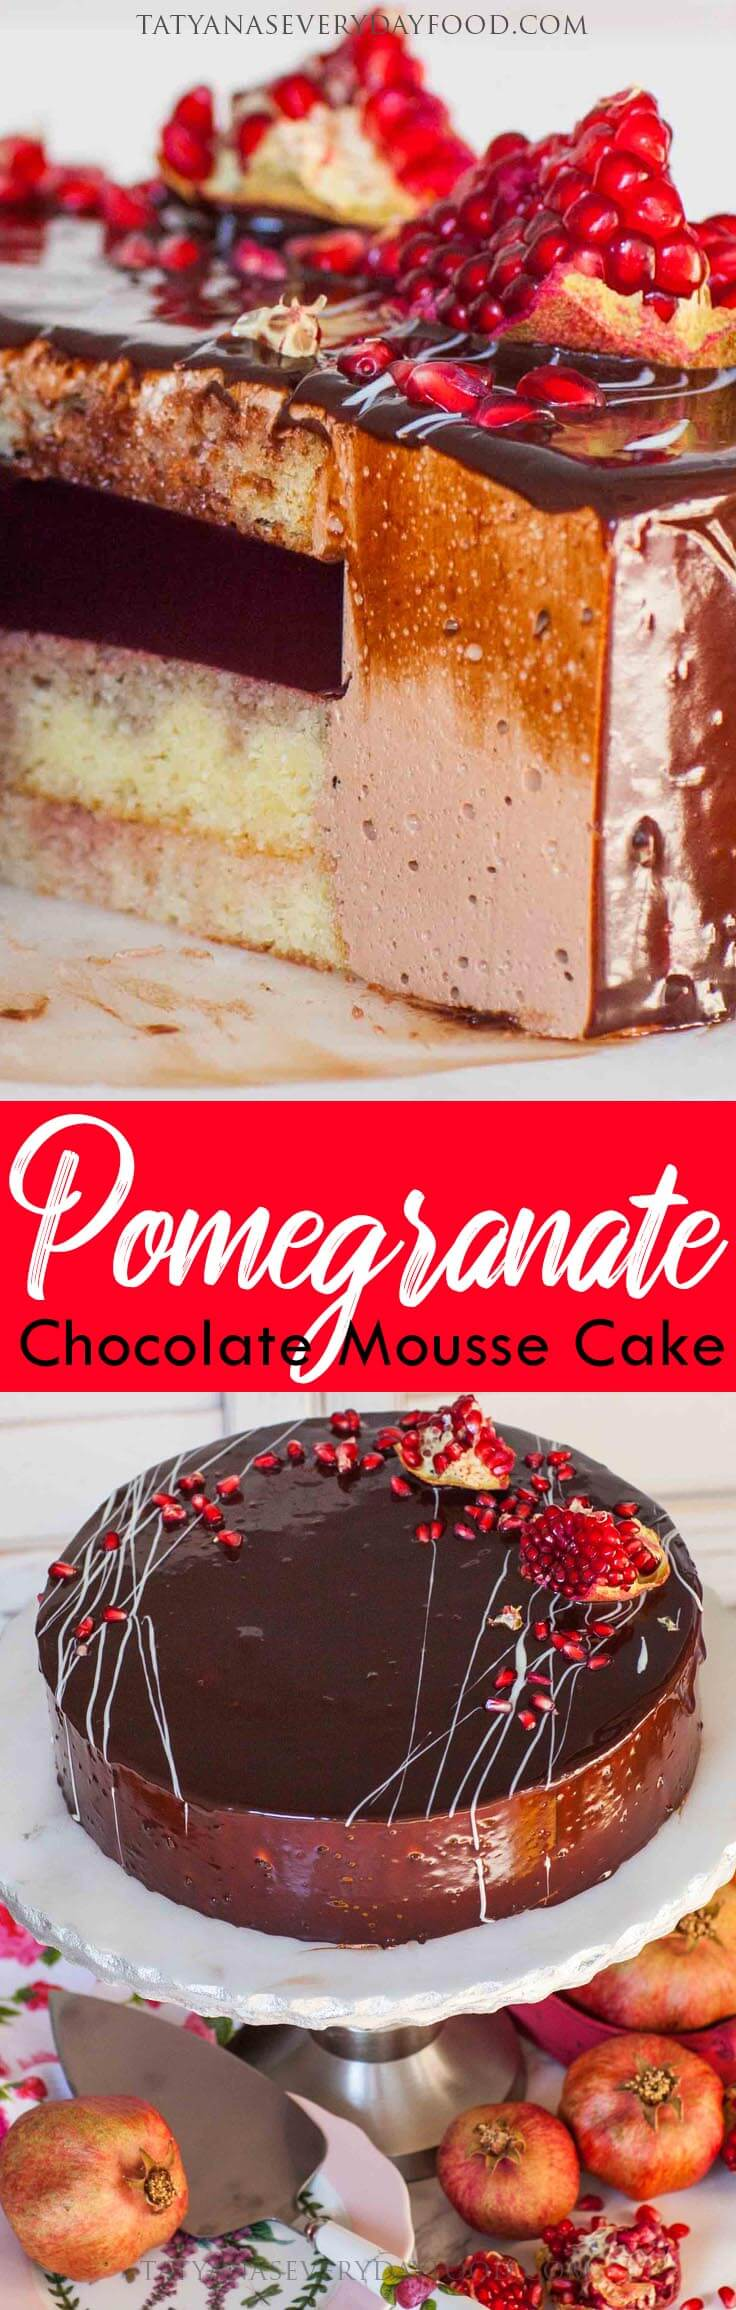 Pomegranate Chocolate Mousse Cake video recipe